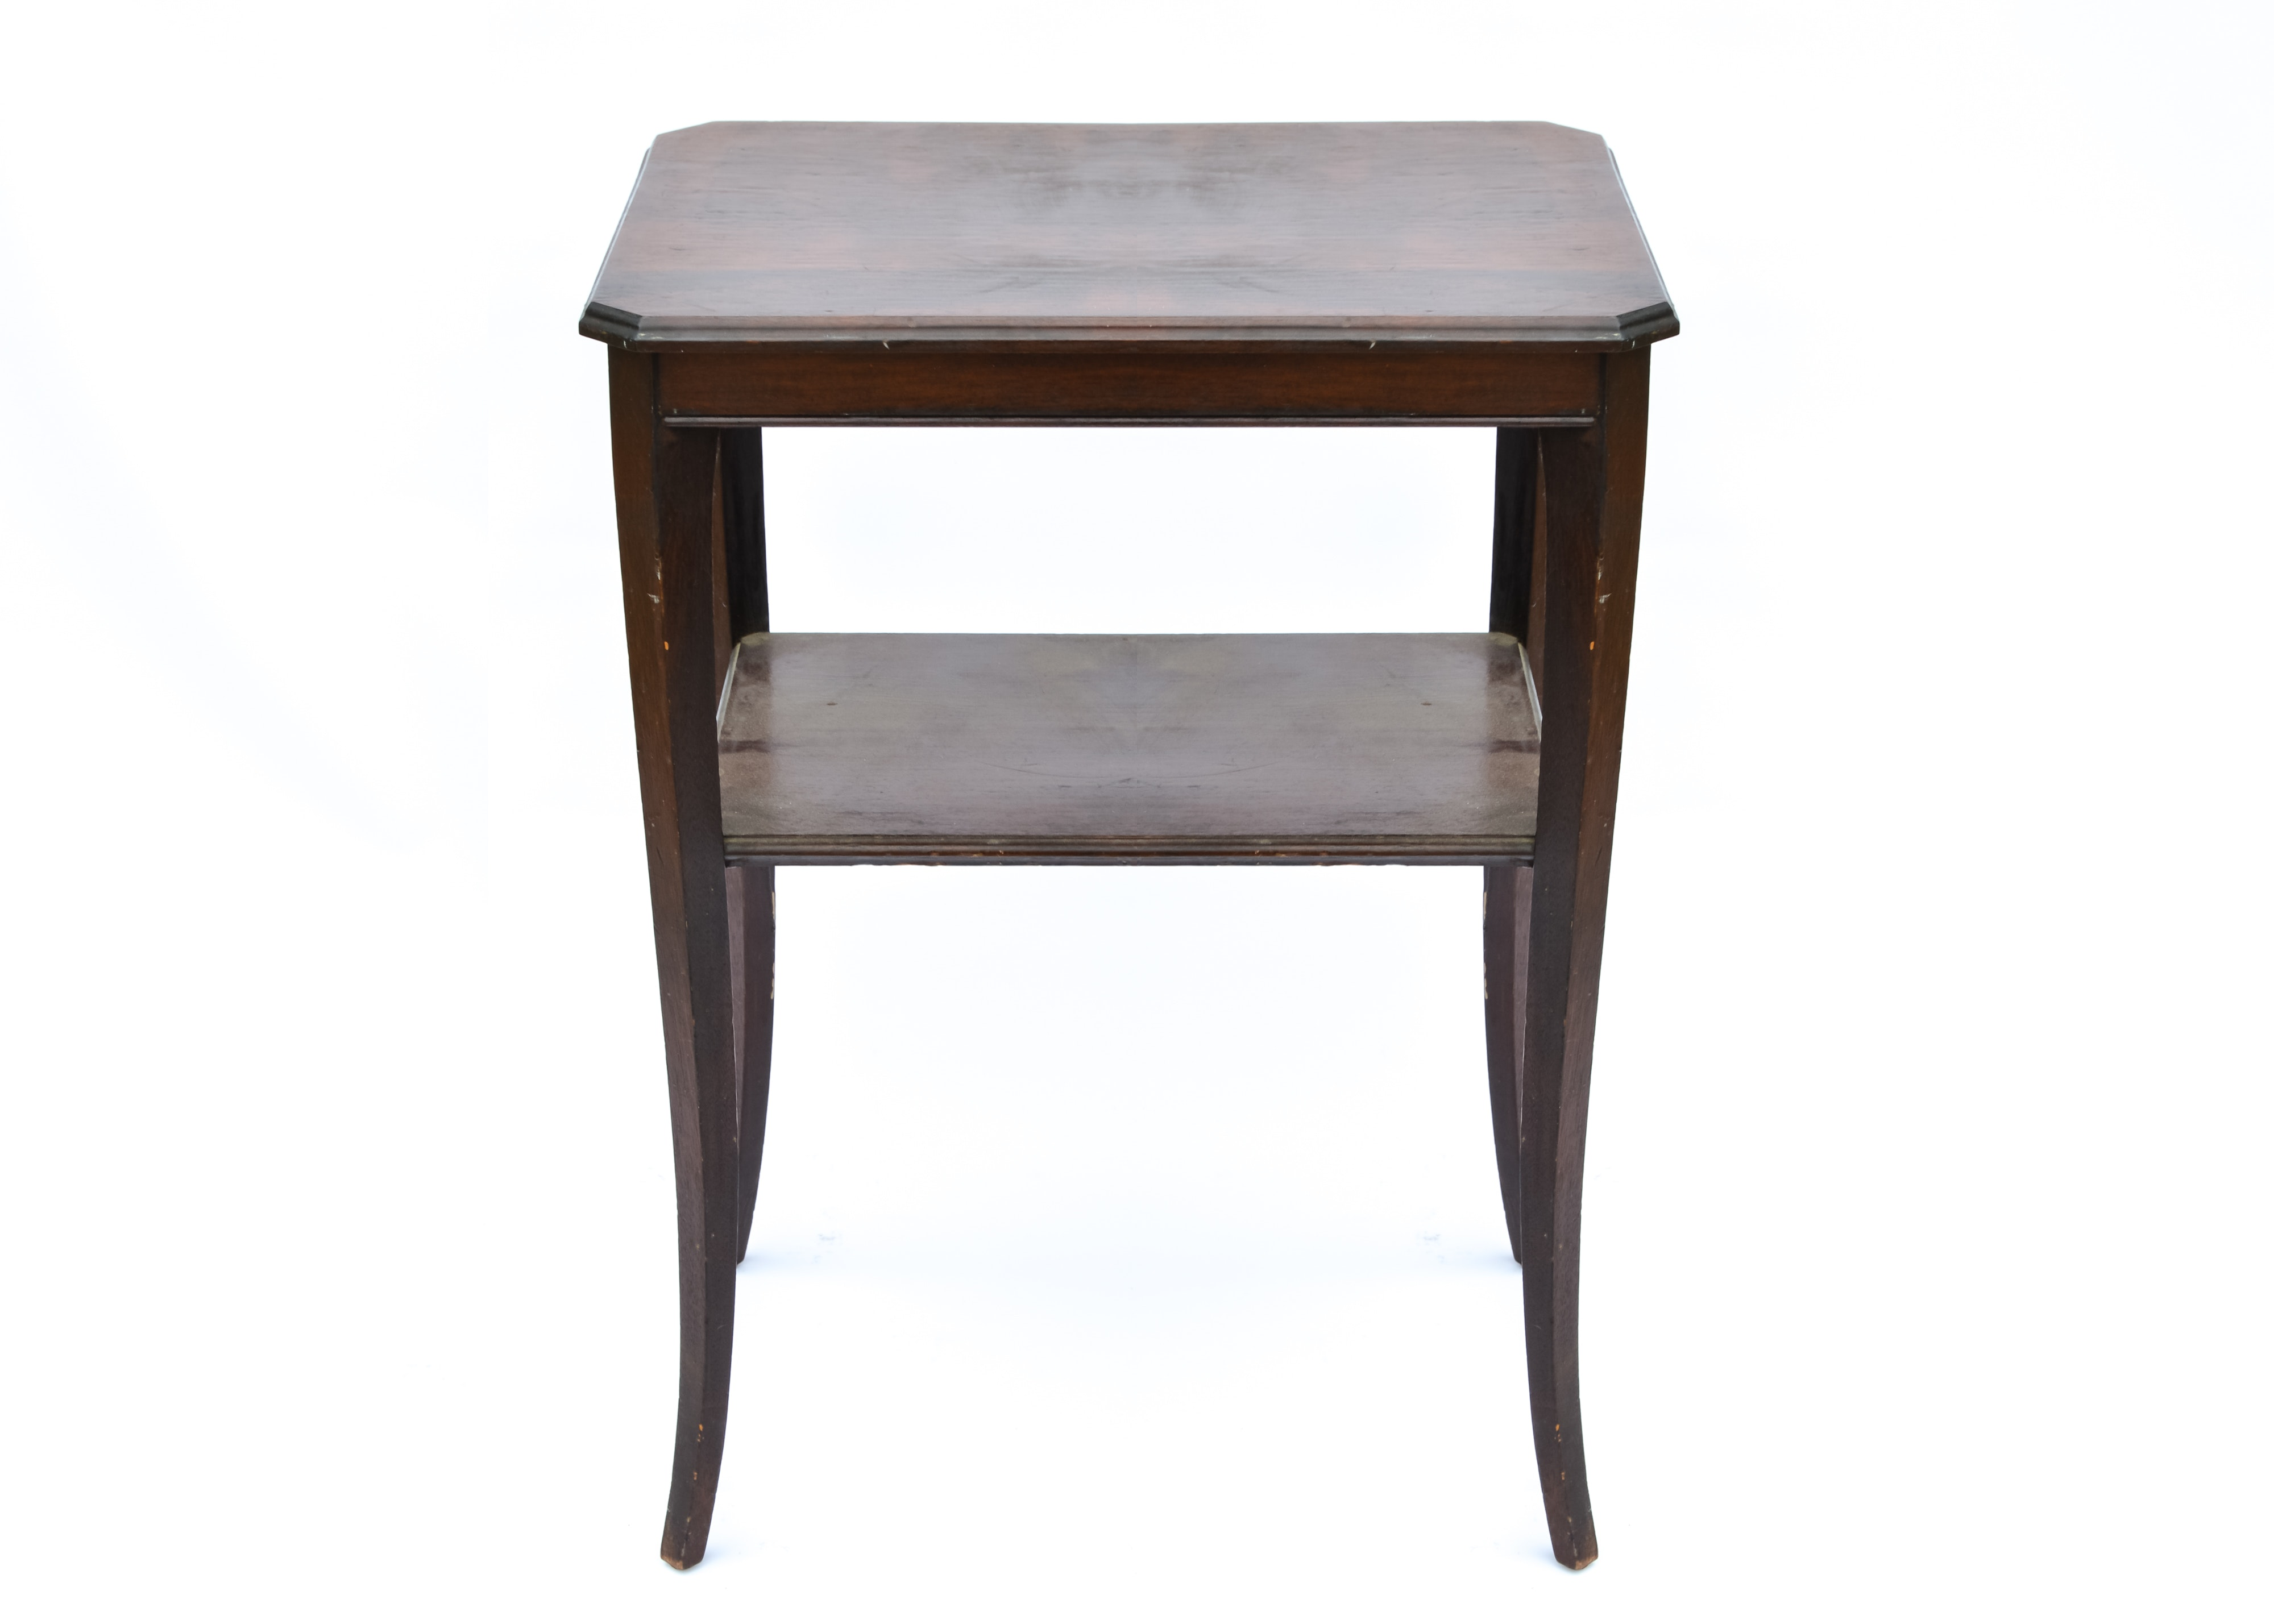 End Table With A Dark Oak Finish